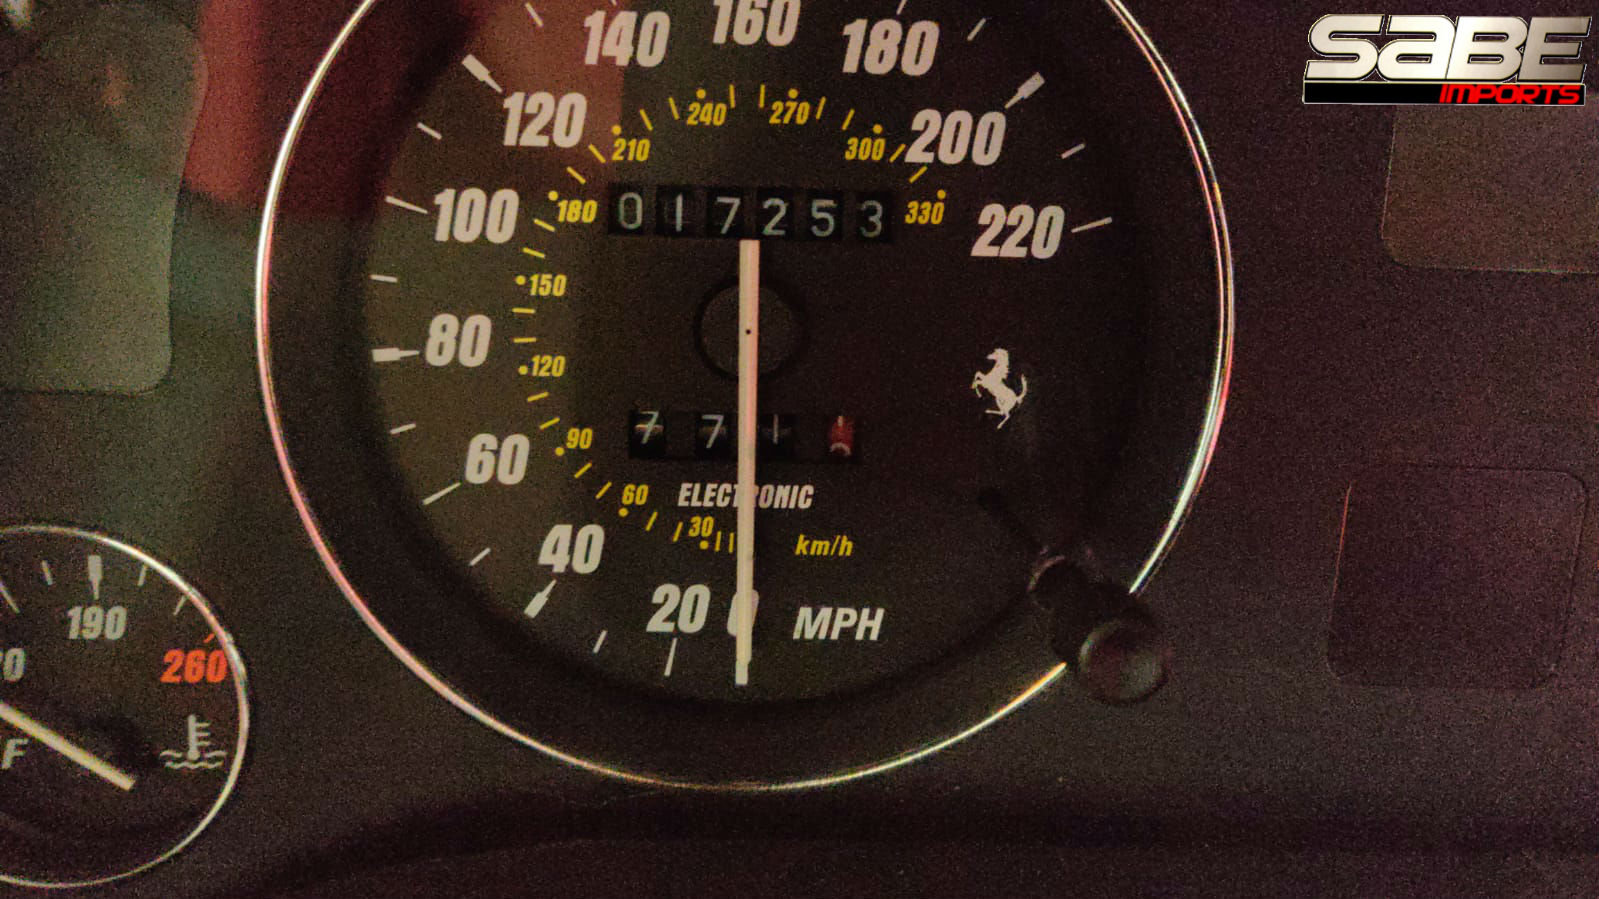 2002 FERRARI 456M 5.5 GTA *Full Service History* For Sale (picture 5 of 6)